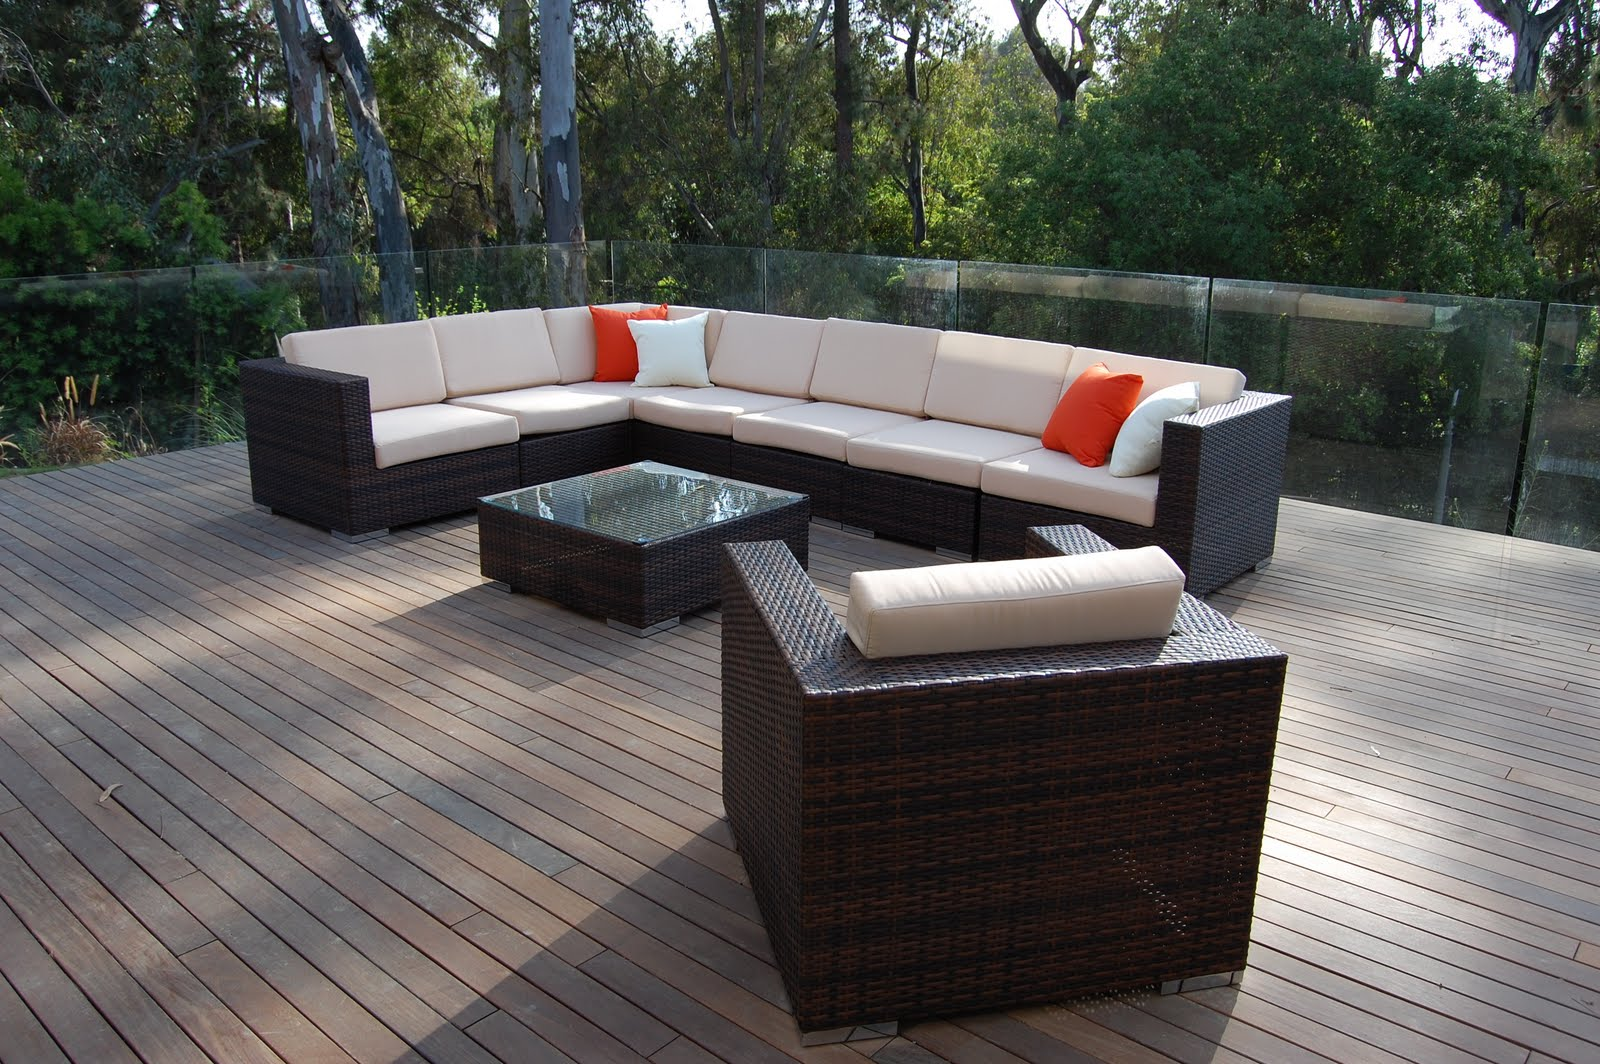 inexpensive-patio-furniture-sets